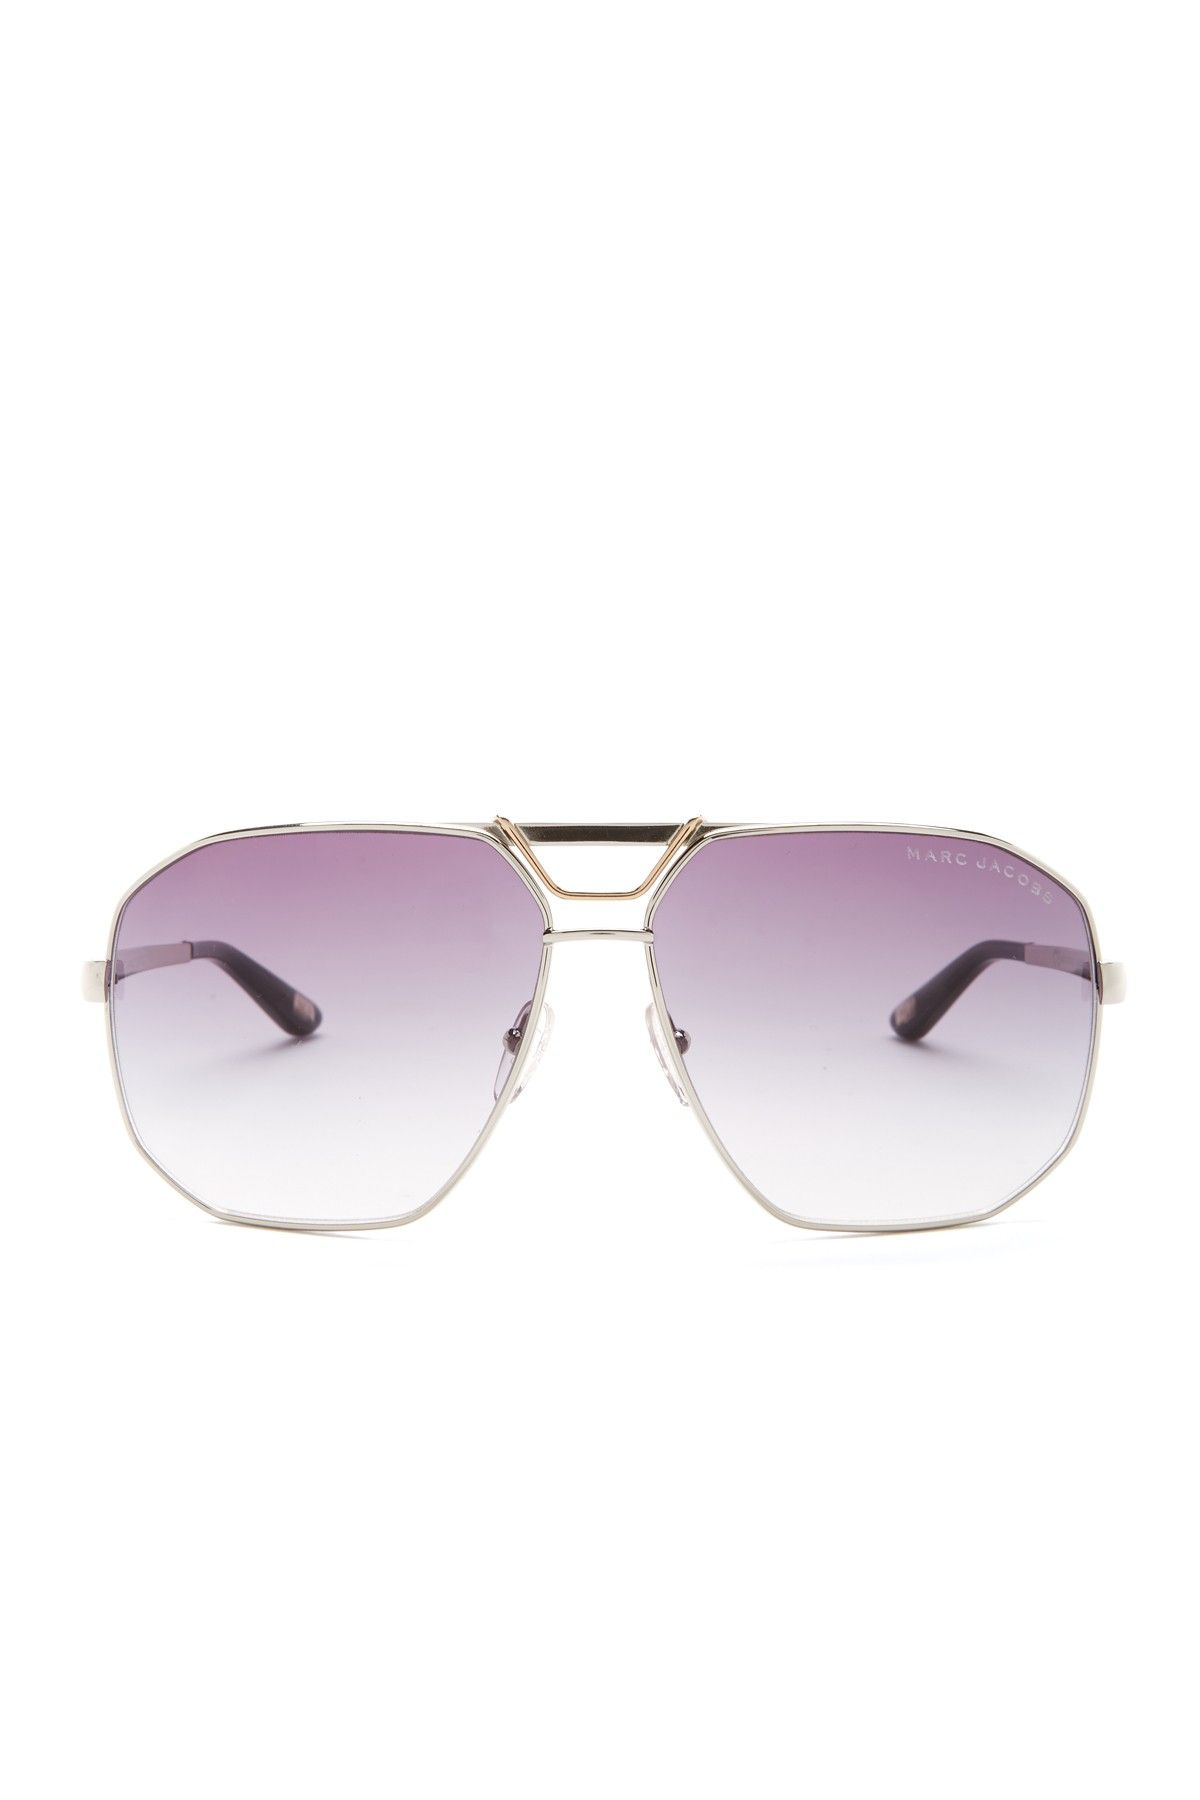 Amazing Marc Jacobs Metal Frame Sunnies   Summer Style   Pinterest ...